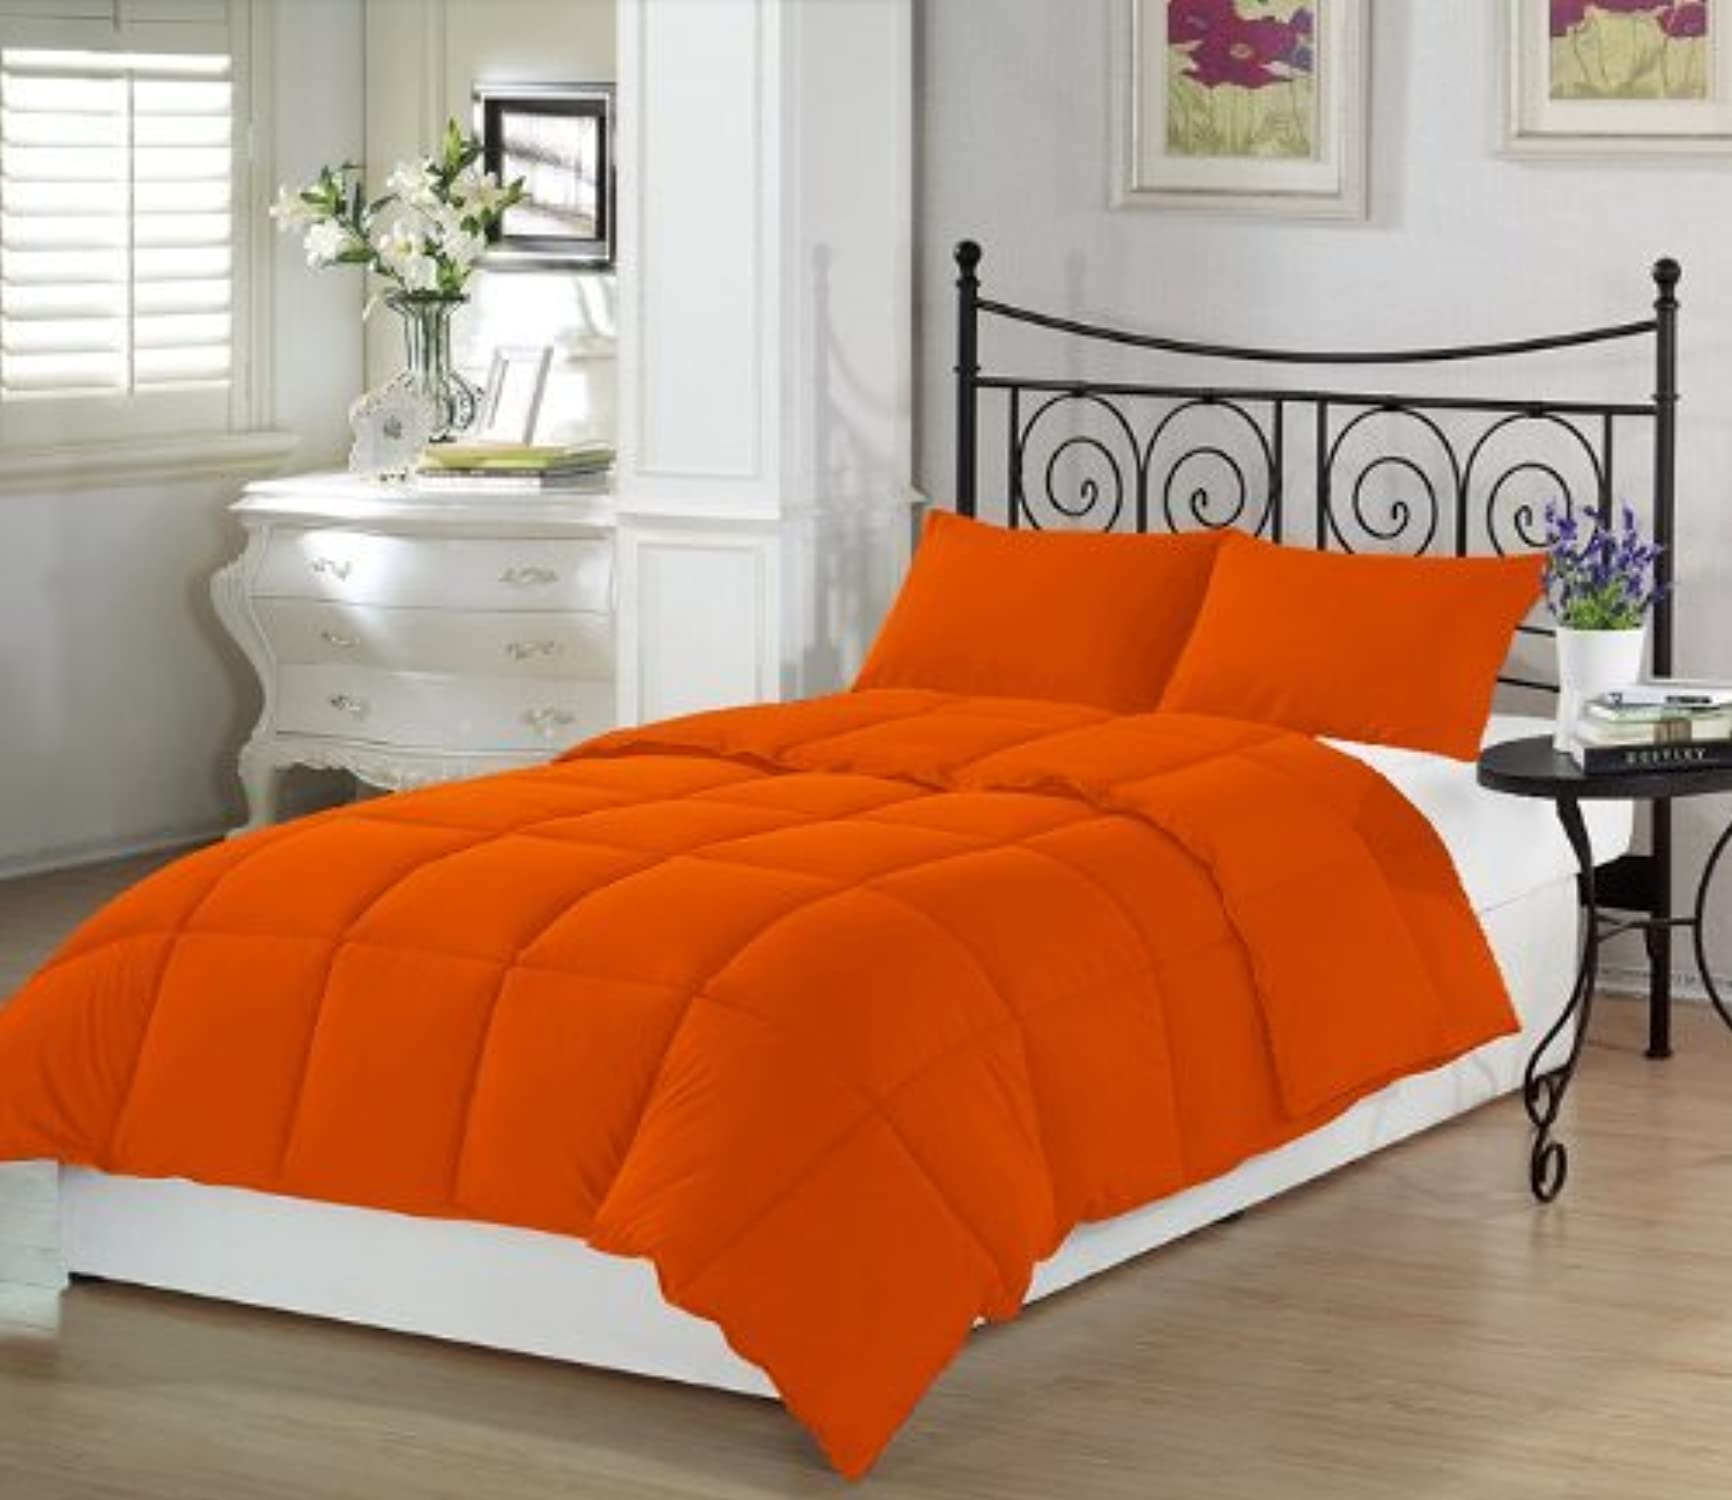 Dreamz simple 400 fils cm2-Doudou - 200 g m2 King Taille Orange - 100%  coton égypcravaten